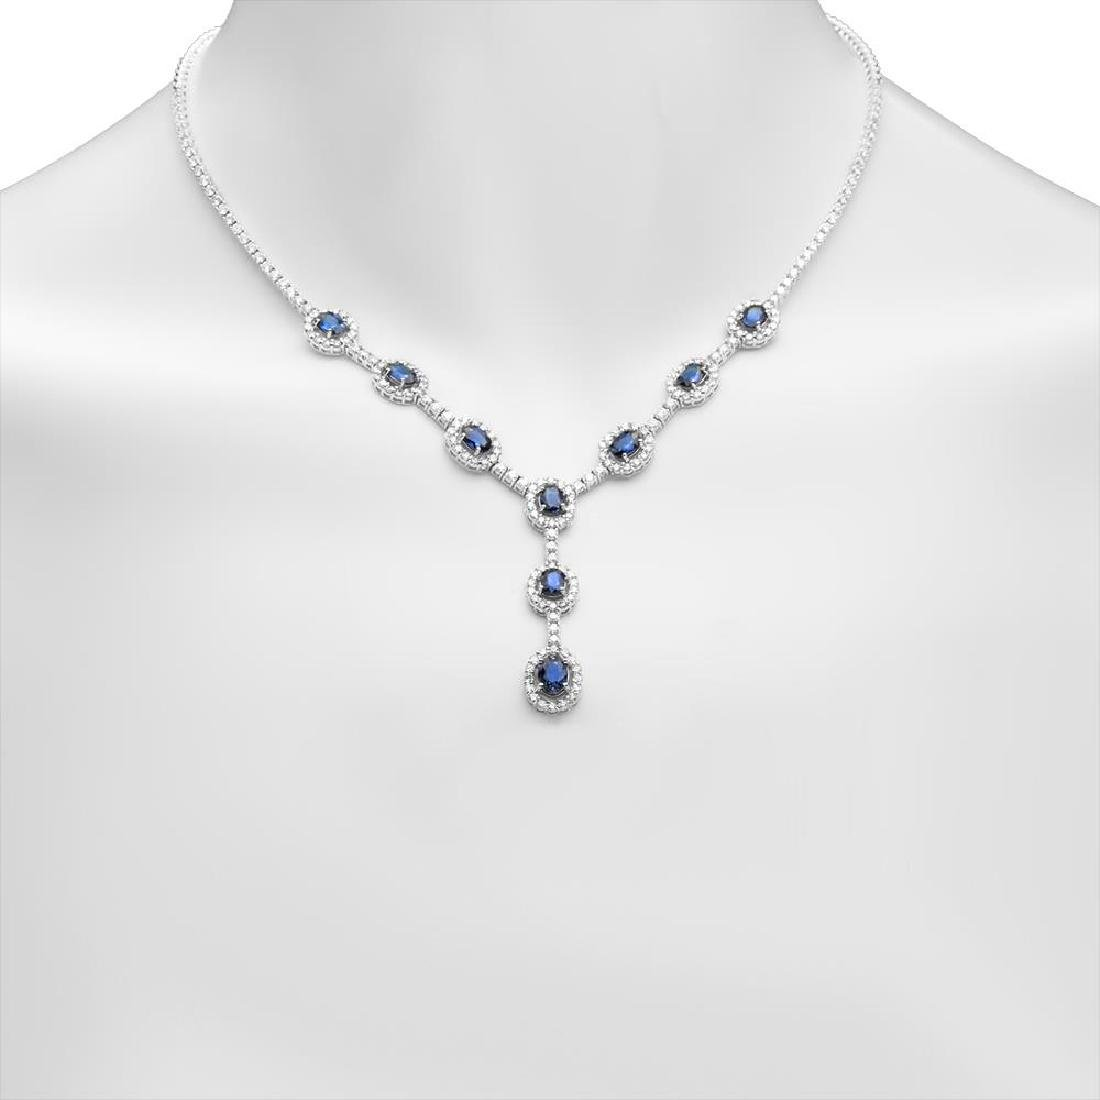 14K Gold 5.02ct Sapphire 5.67cts Diamond Necklace